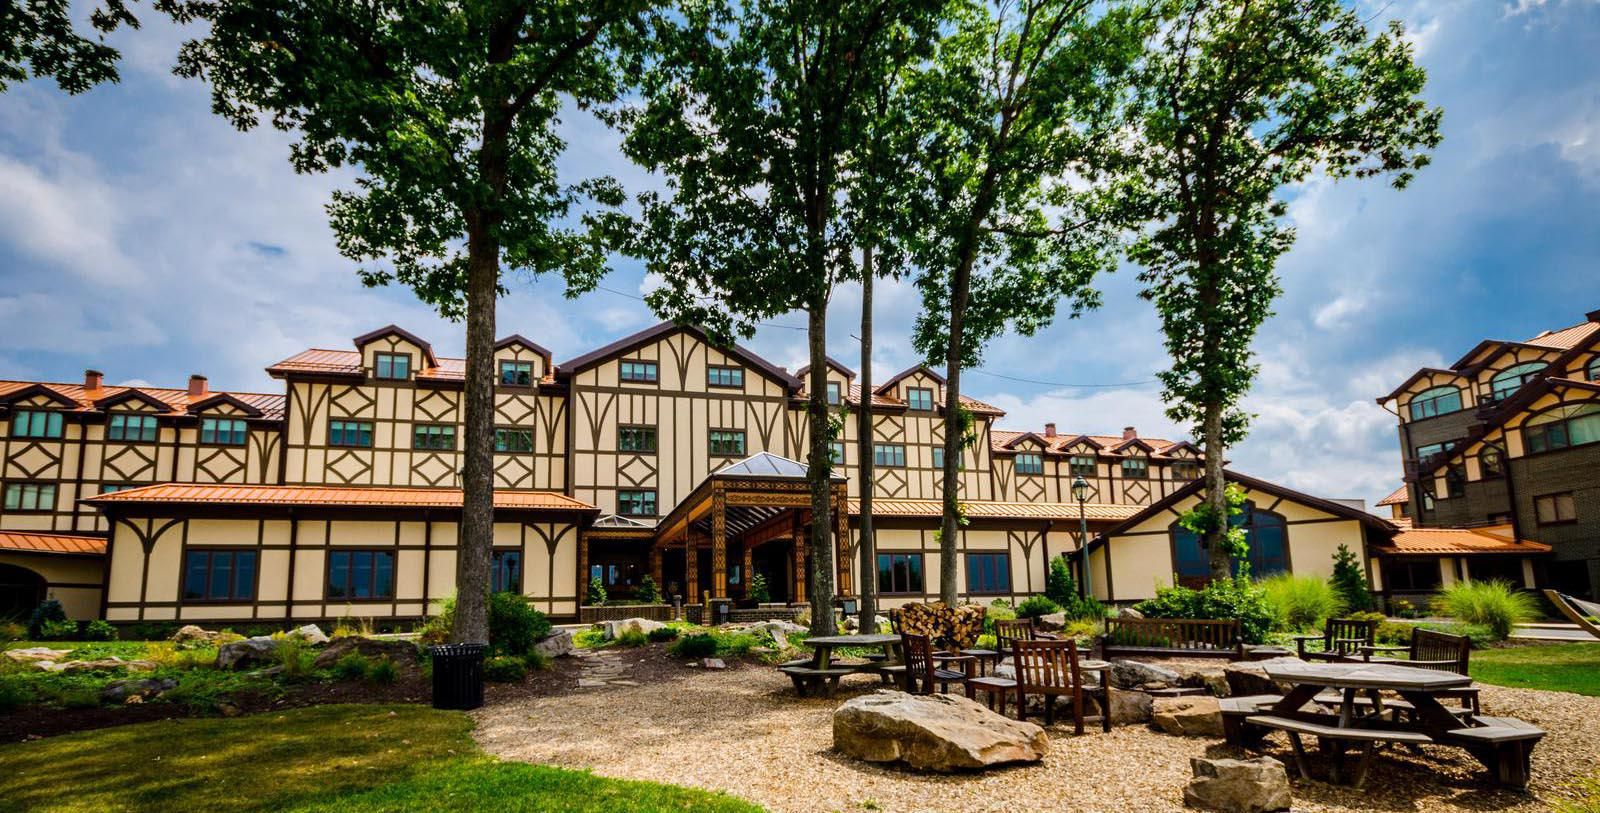 Image of Hotel Exterior The Lodge at Nemacolin Woodlands Resort, 1968, Member of Historic Hotels of America, in Farmington, Pennsylvania, Discover